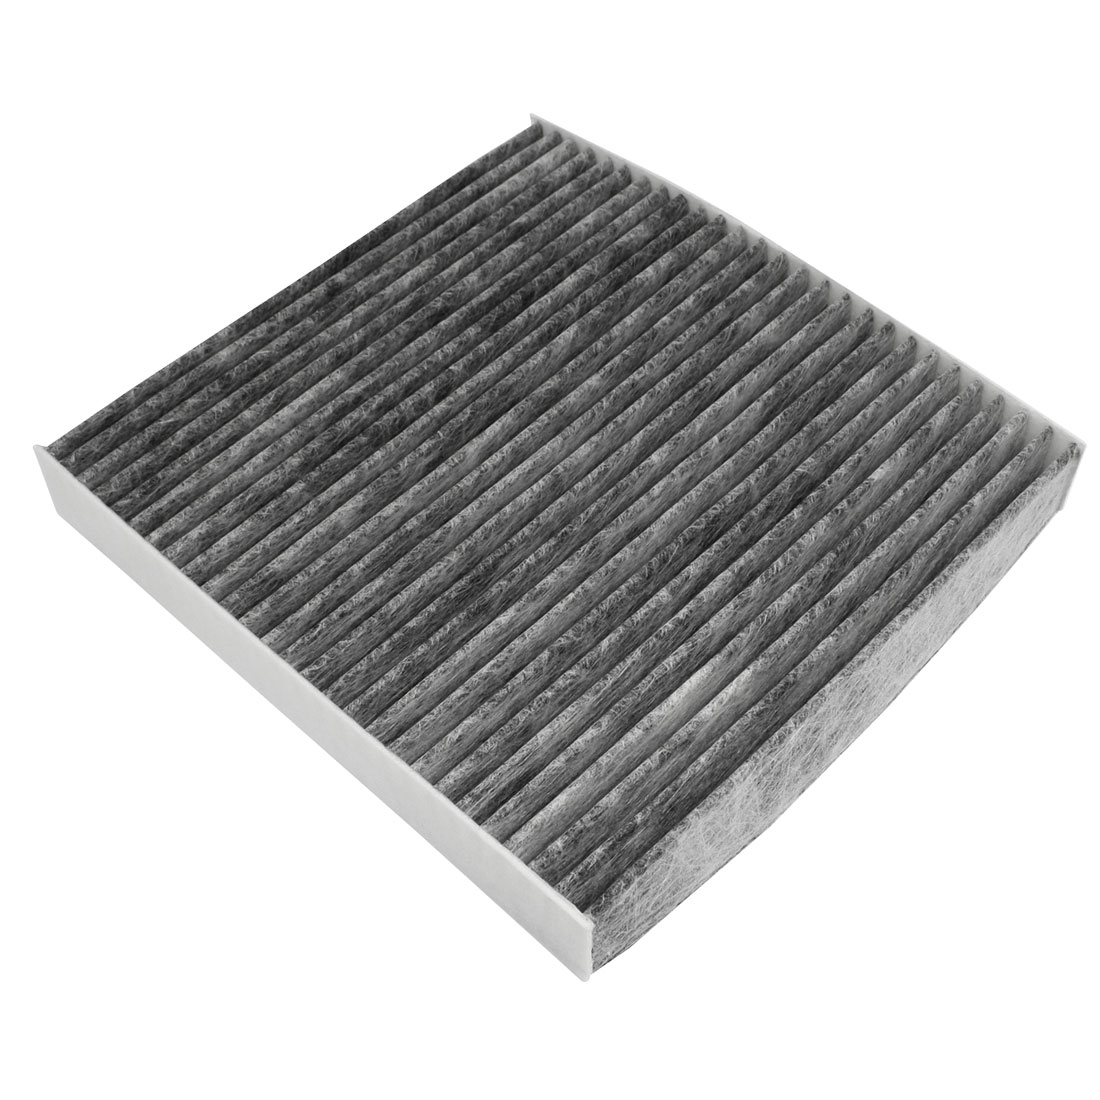 Active Carbon Fiber A/C Cabin Air Filter for Nissan Teana